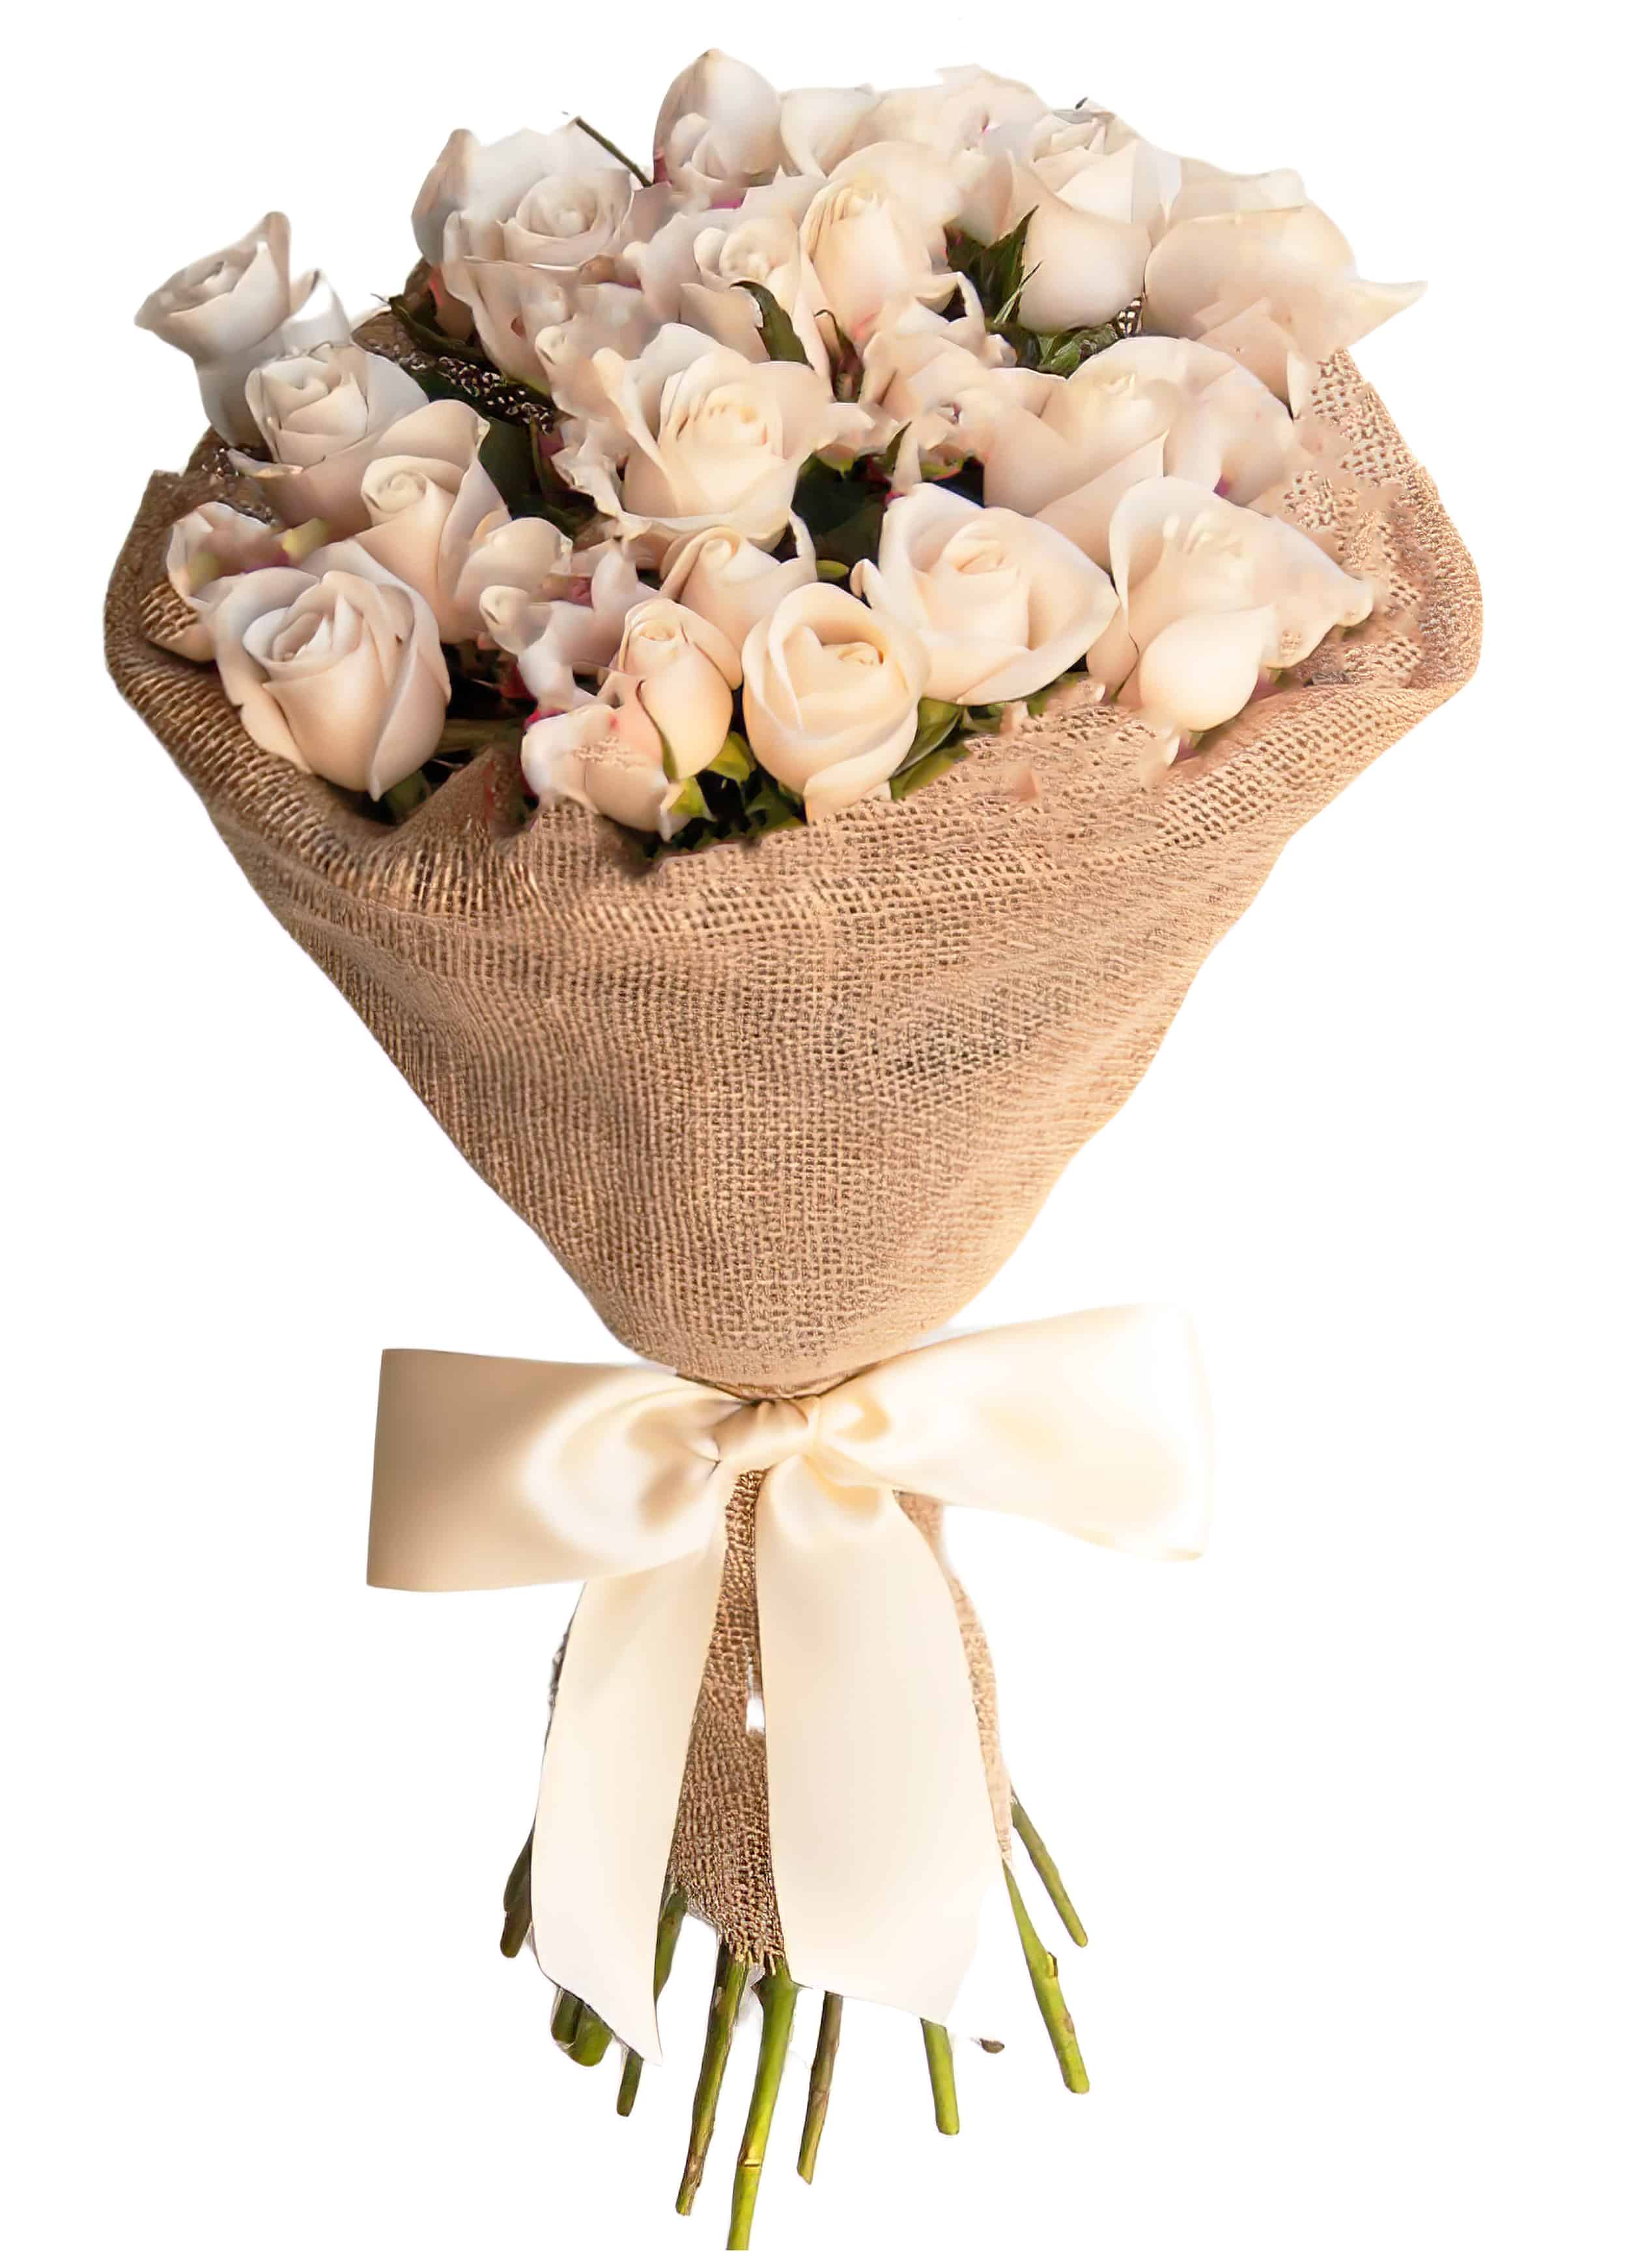 Two Dozen (24) Roses Wrapped | San Francisco Florist Since 1871 Free Bay Area and San Francisco Flower Delivery